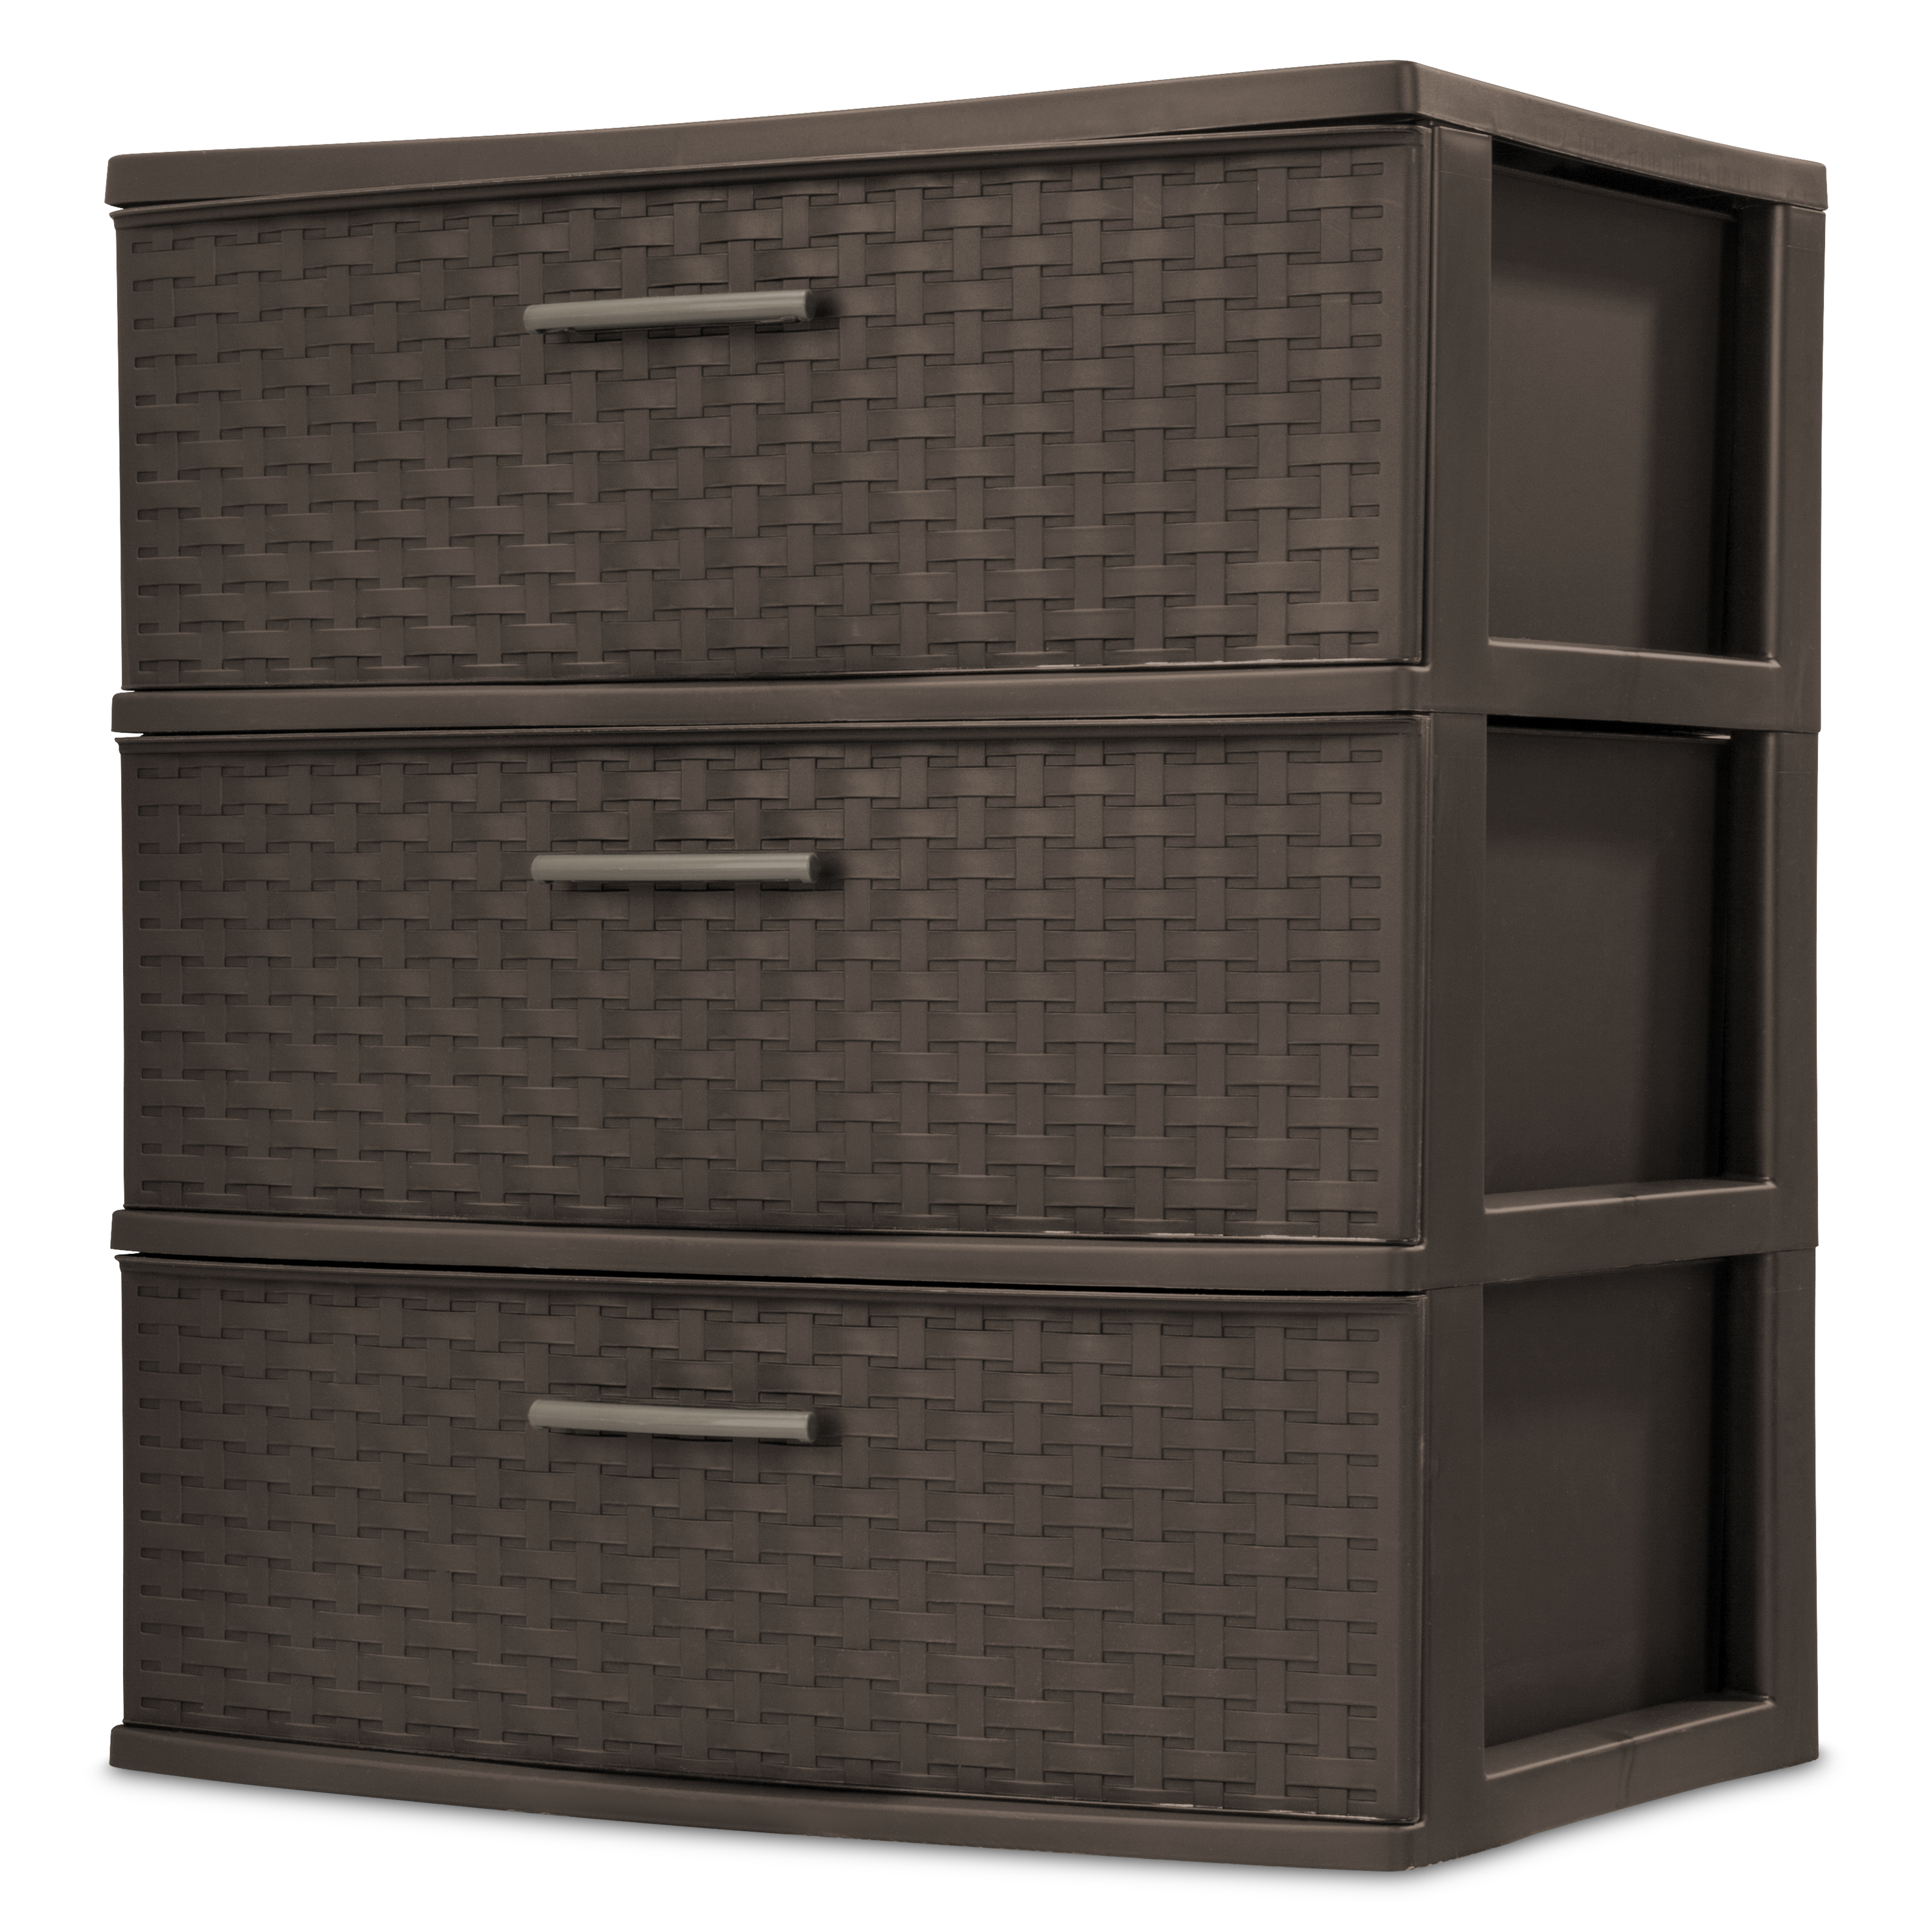 Sterilite 3 Drawer Wide Weave Tower, Espresso